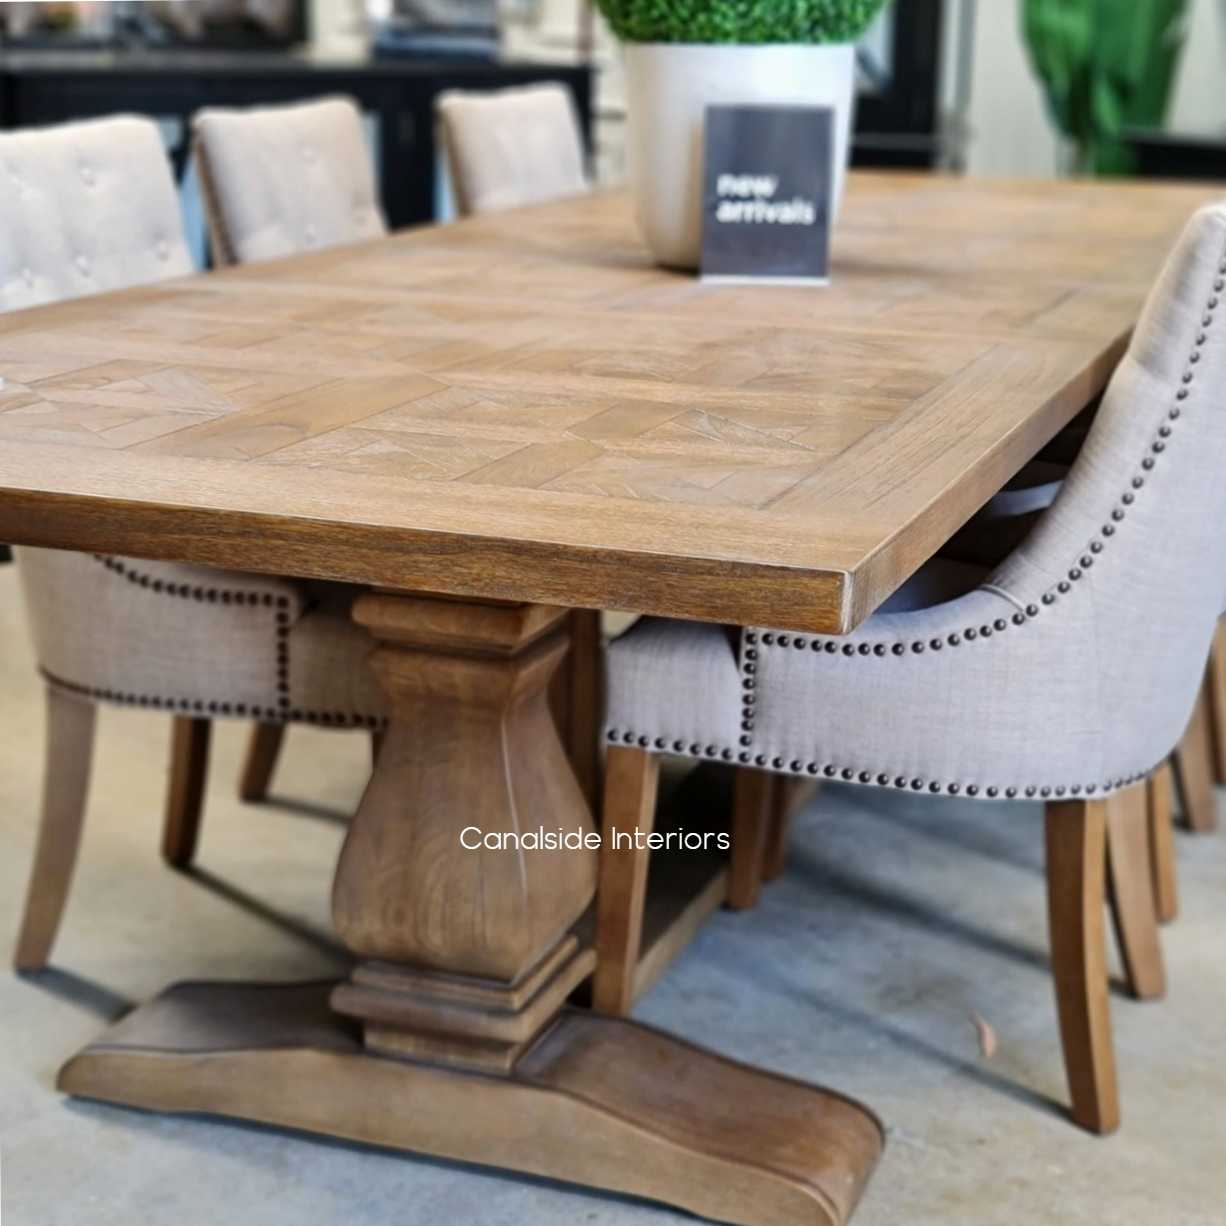 Provence Parquetry Double Extension Dining Table tables, hamptons, hamptons, hampton table, provincial, plantation, dining tables, trestle base, dining room